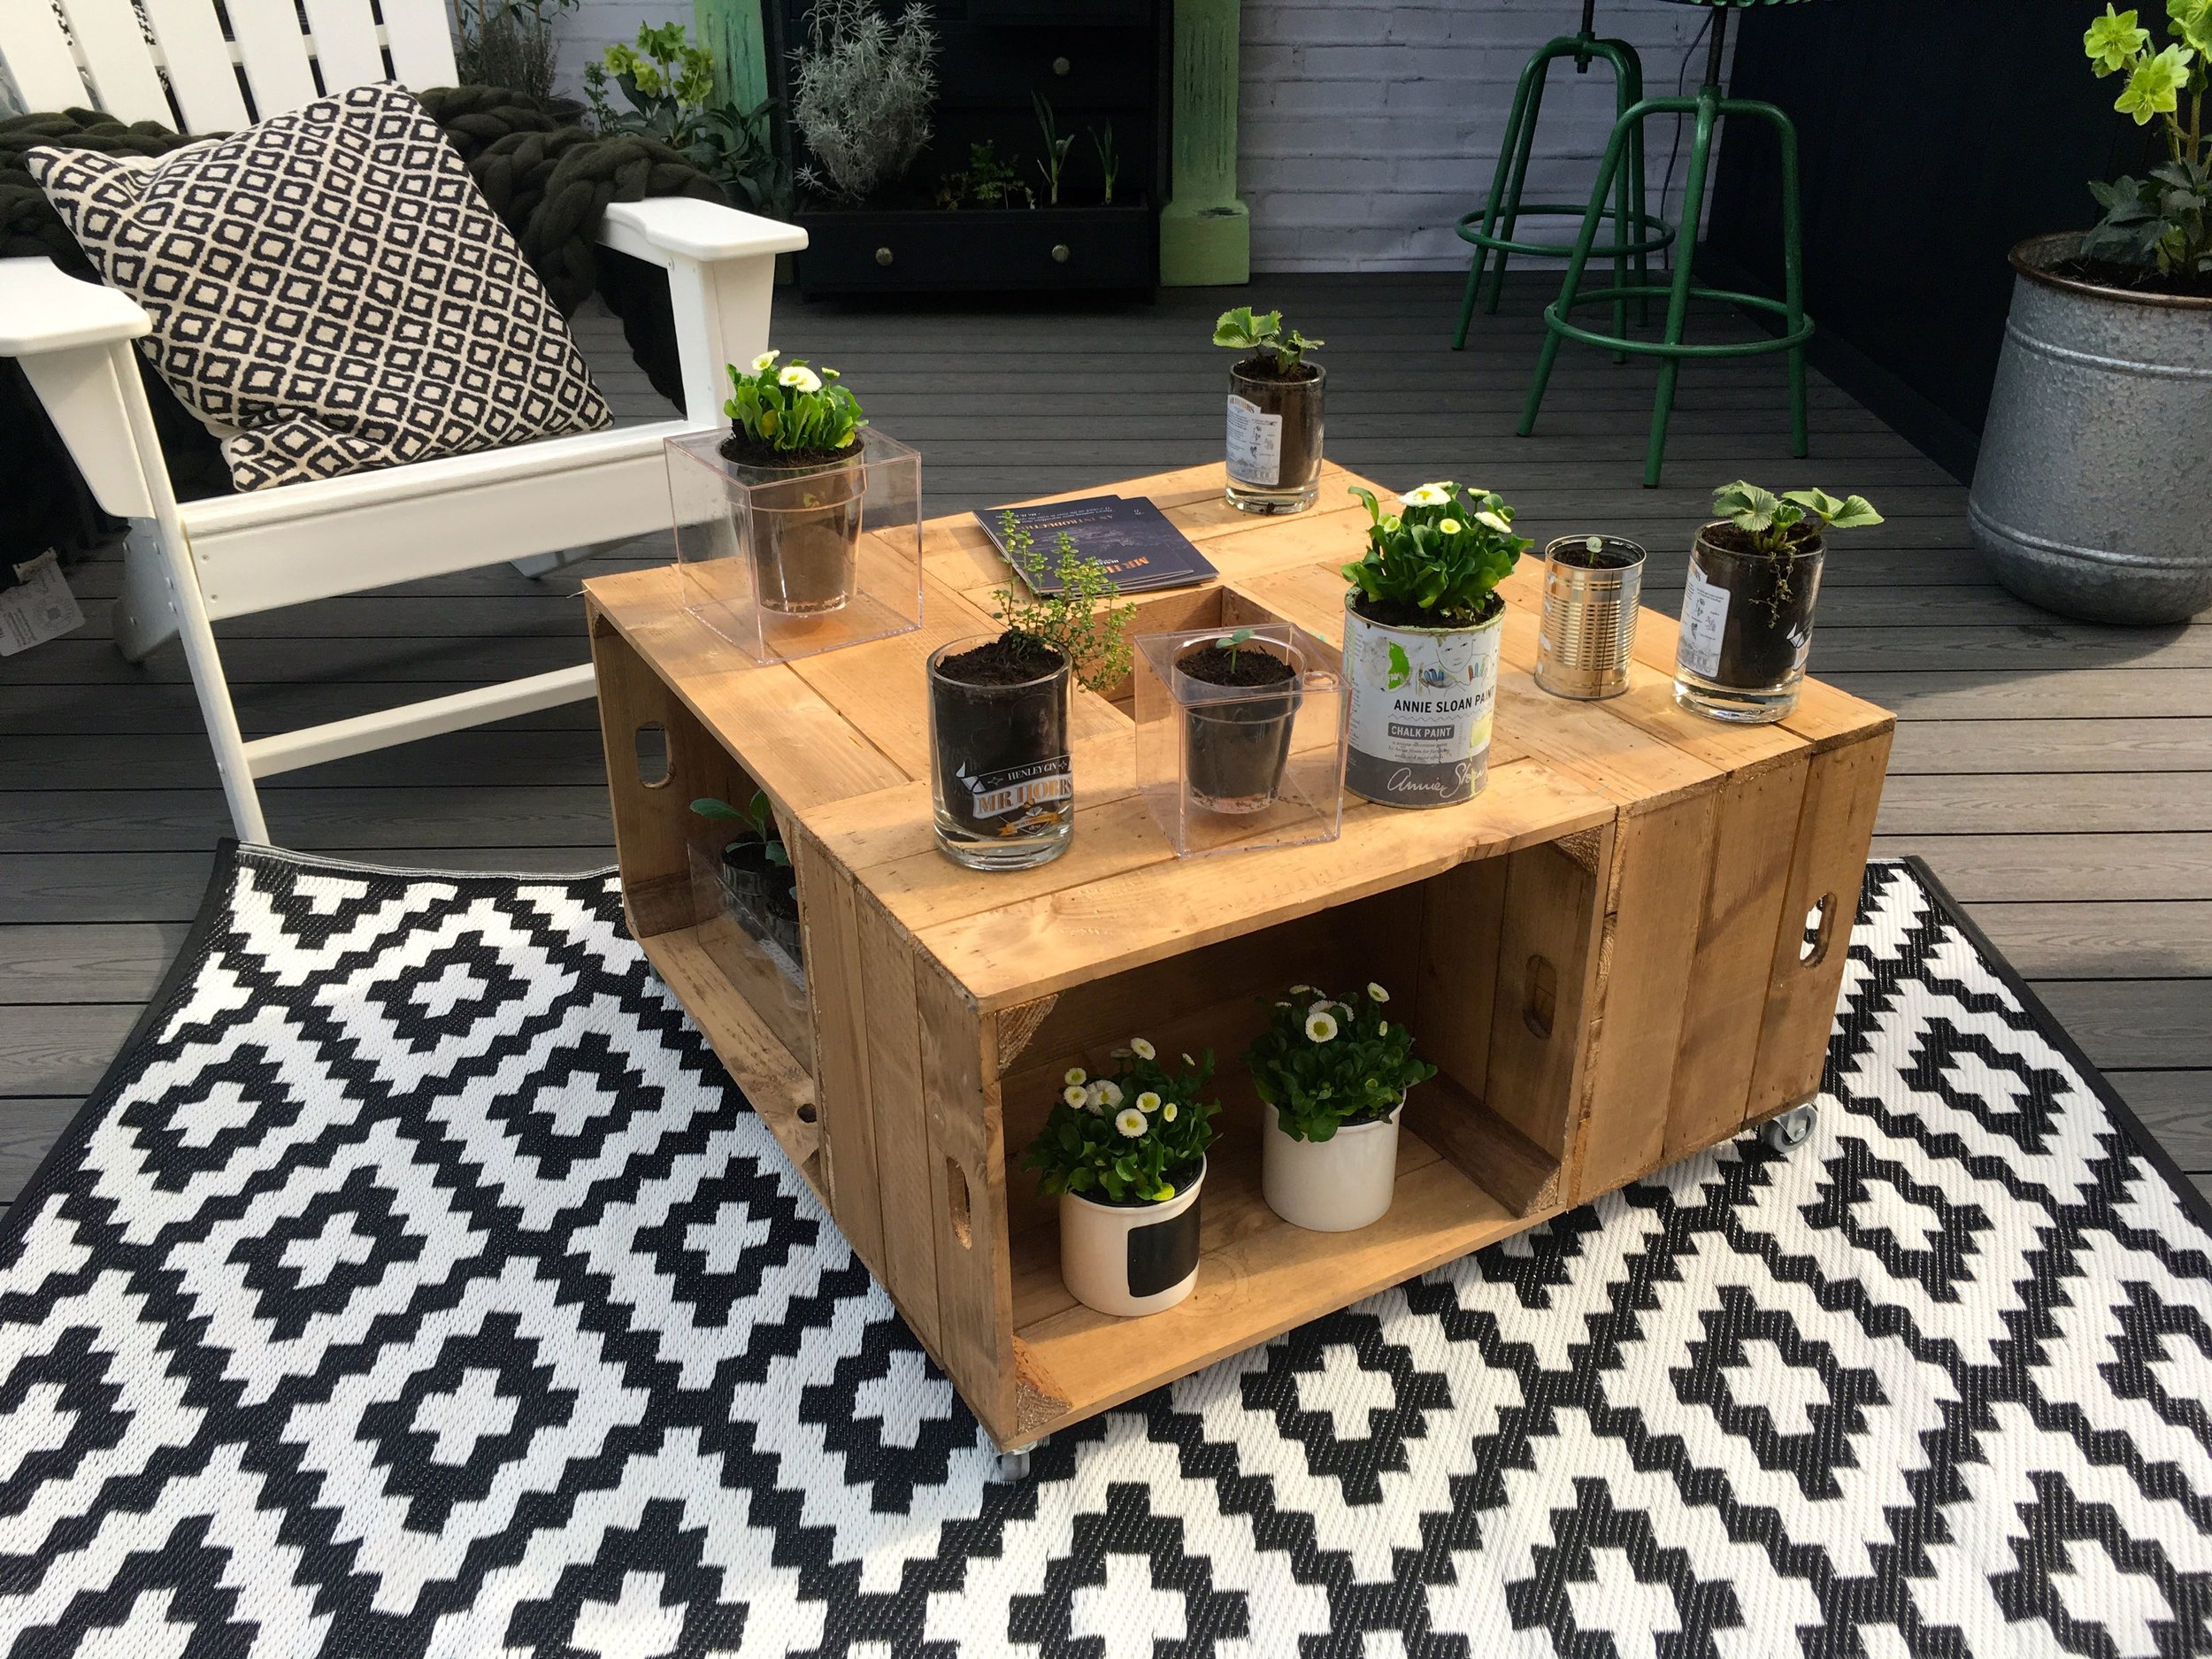 Crates joined together to make a stylish table.jpg